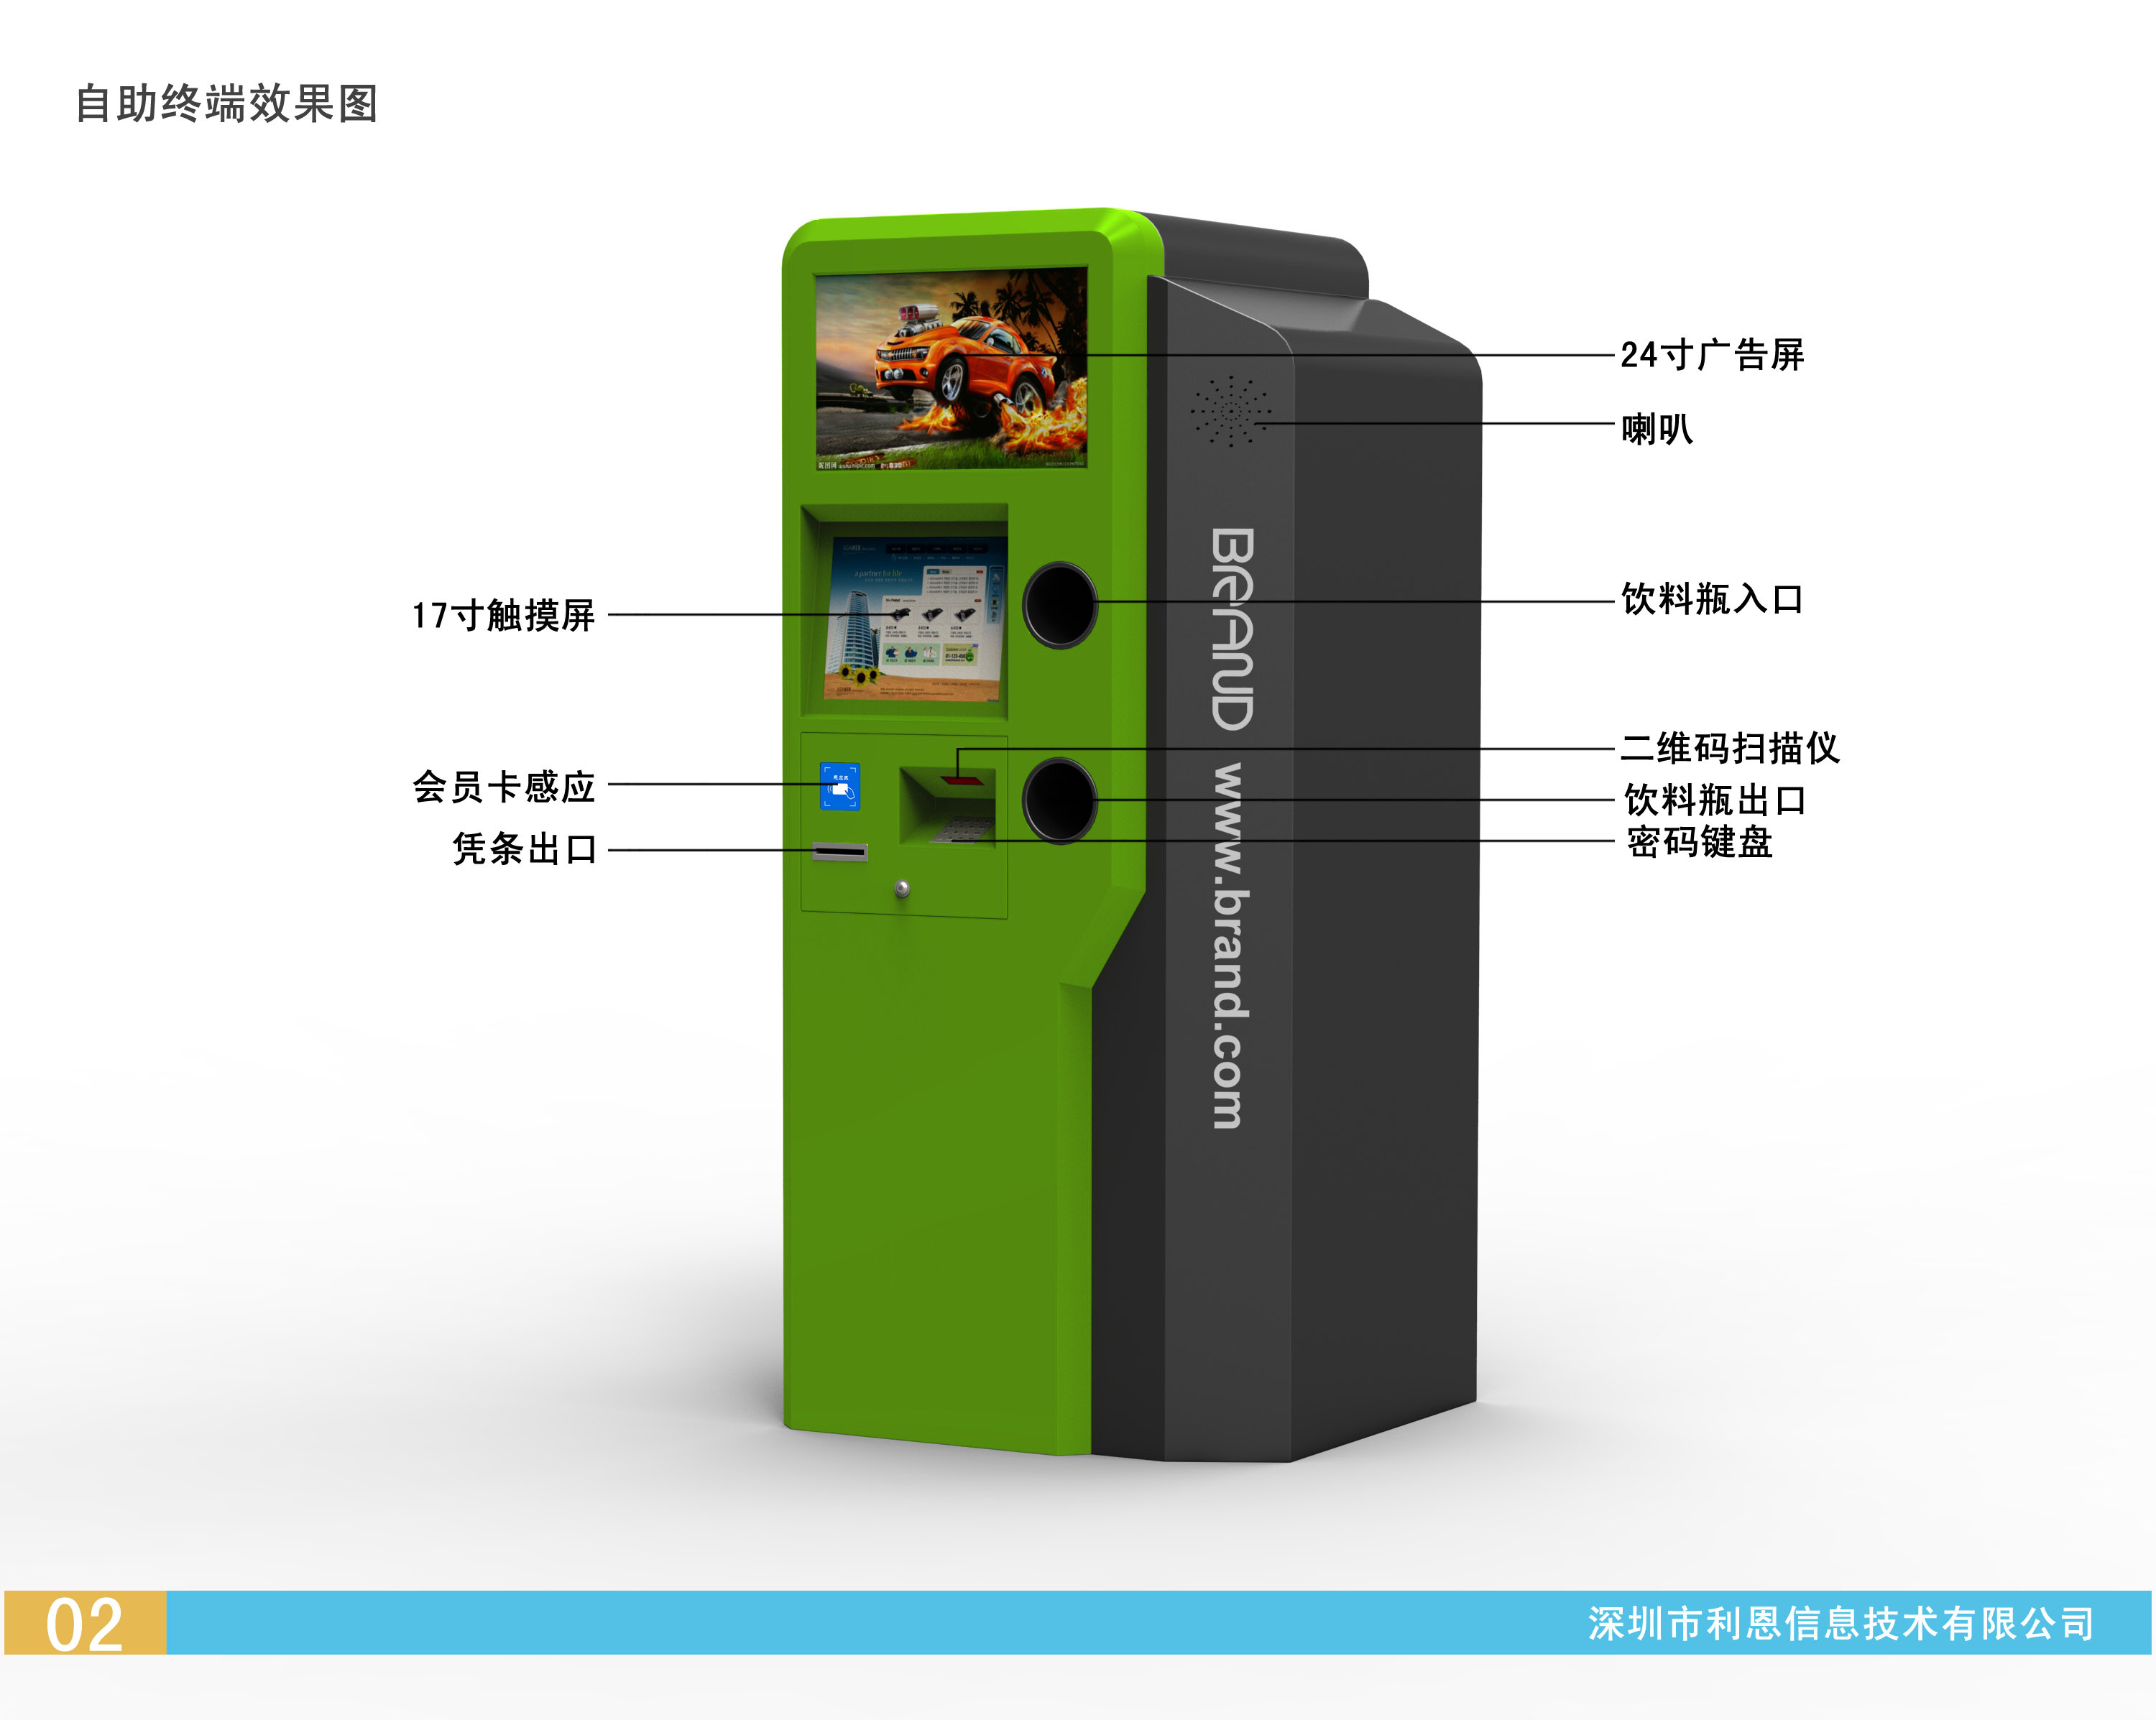 Recycling Machine Self Checkout Kiosk 24'' LCD Display DC 24V For Advertising